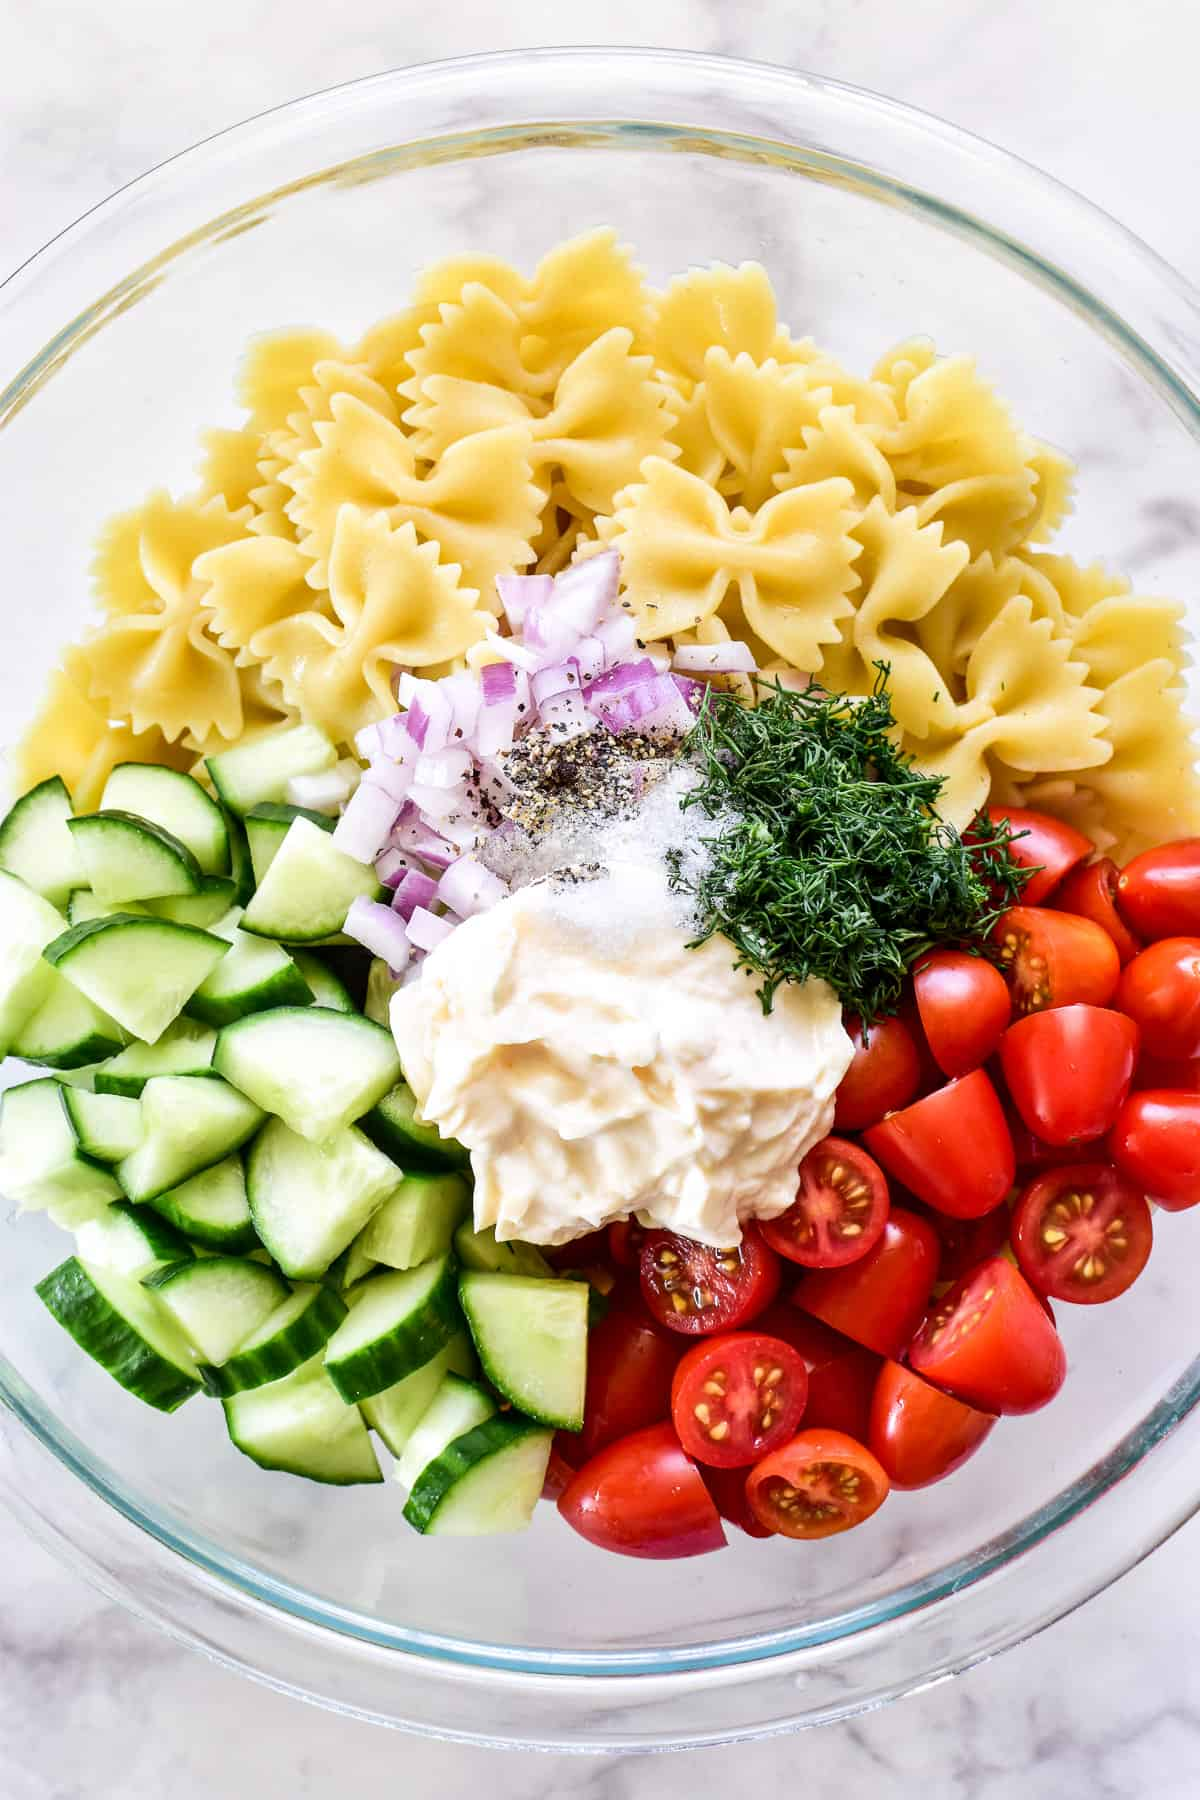 Cucumber Pasta Salad ingredients chopped in a mixing bowl